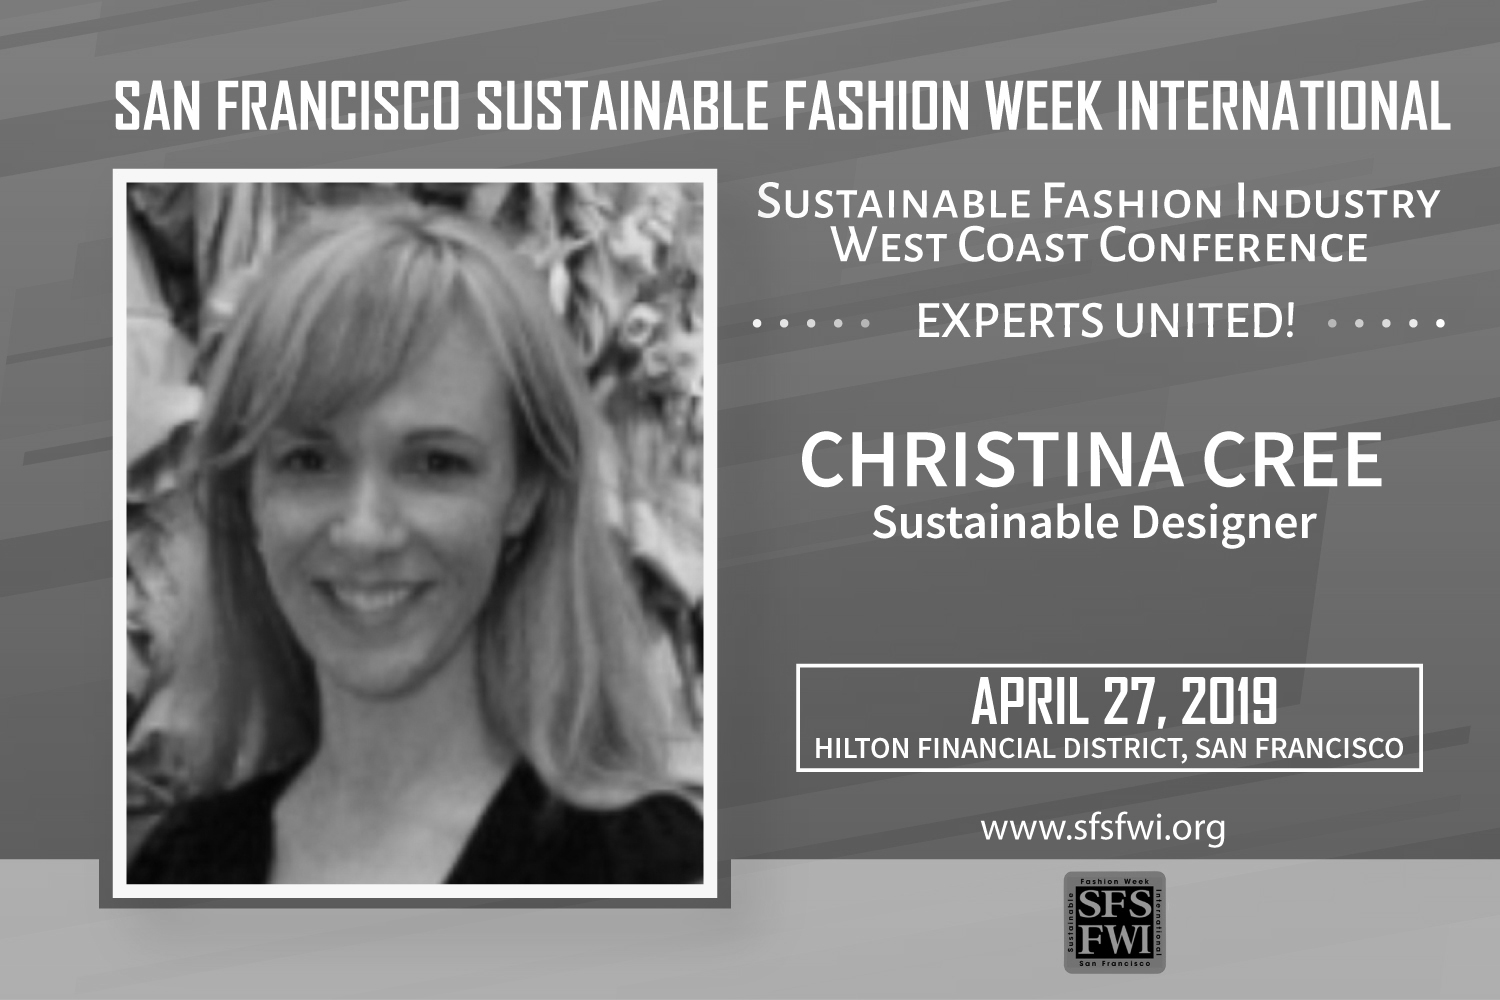 Christina-Cree-Sustainable-Designer-B&W